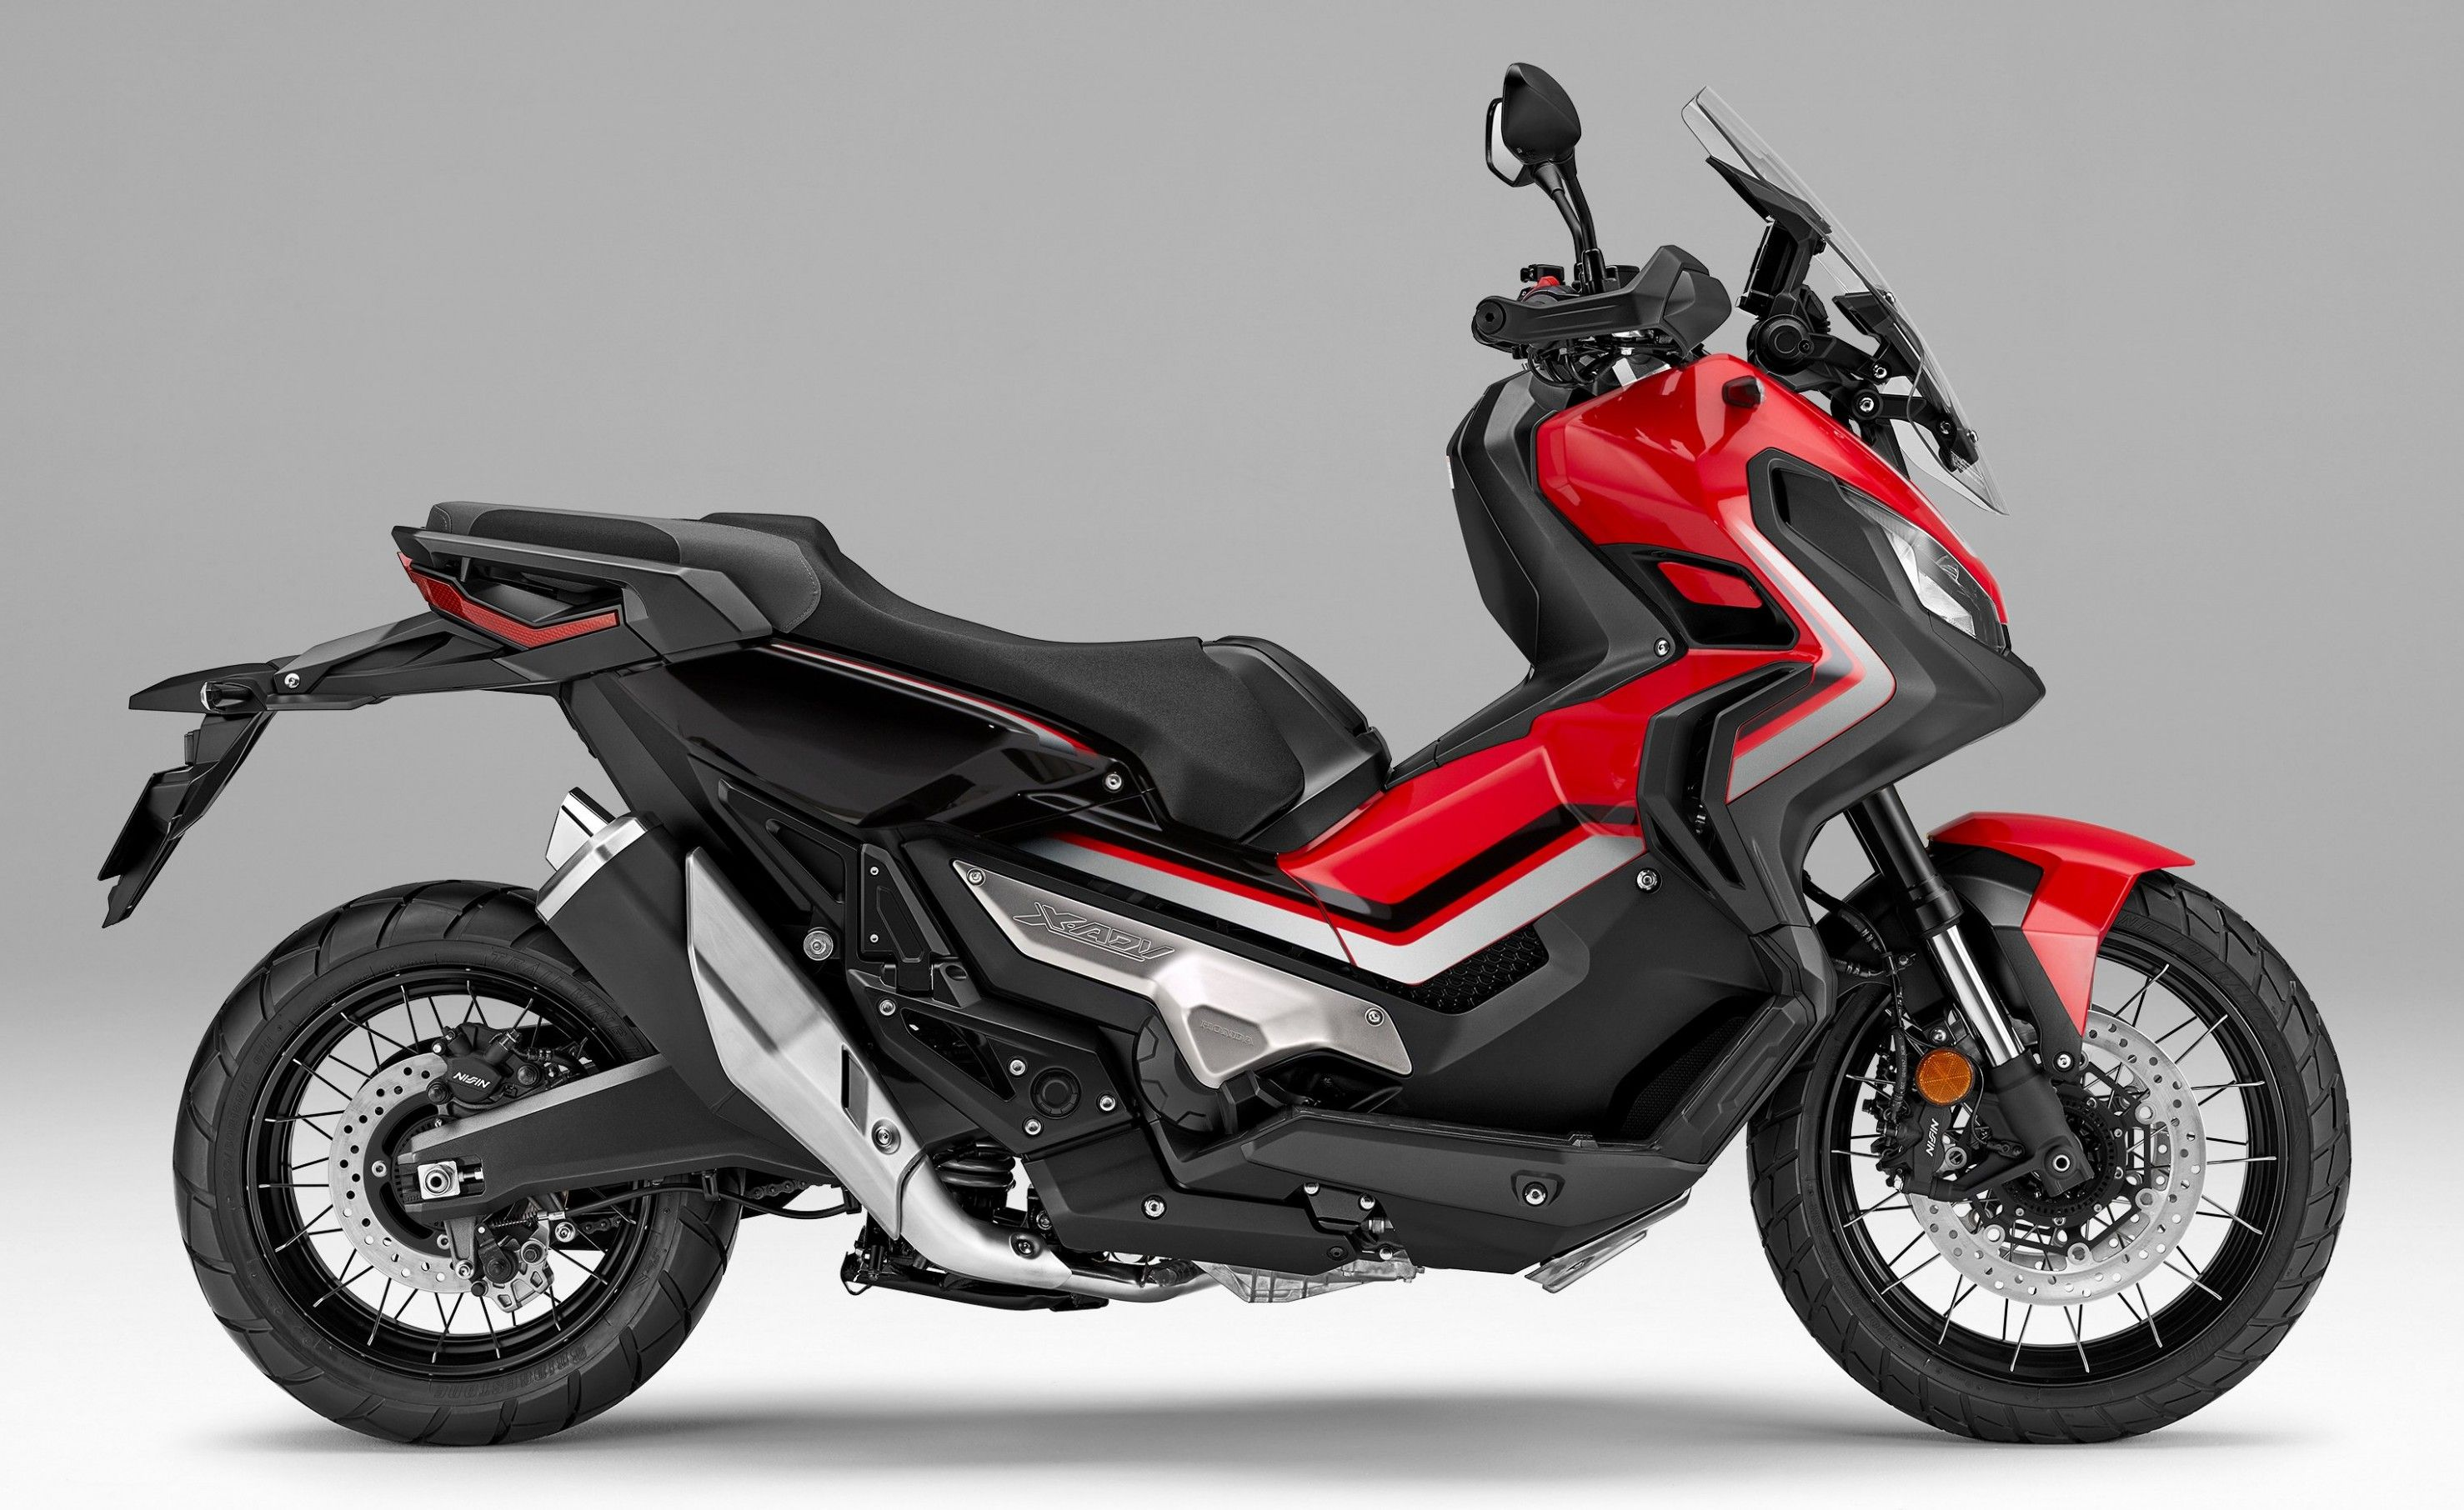 honda motorcycle new model 2019 philippines | reviewmotors.co